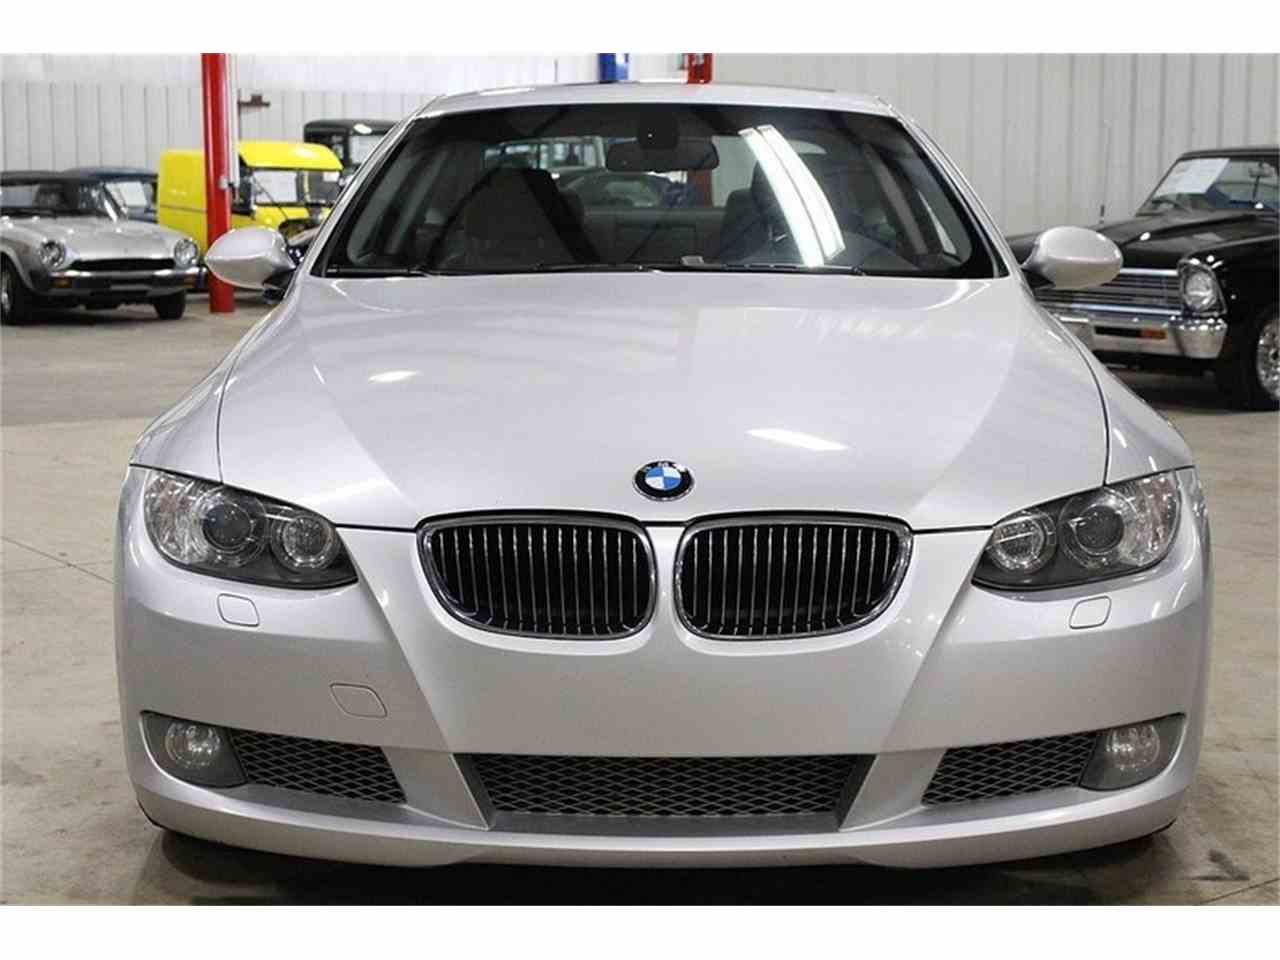 Large Picture of 2007 335i - $9,900.00 - LS5N